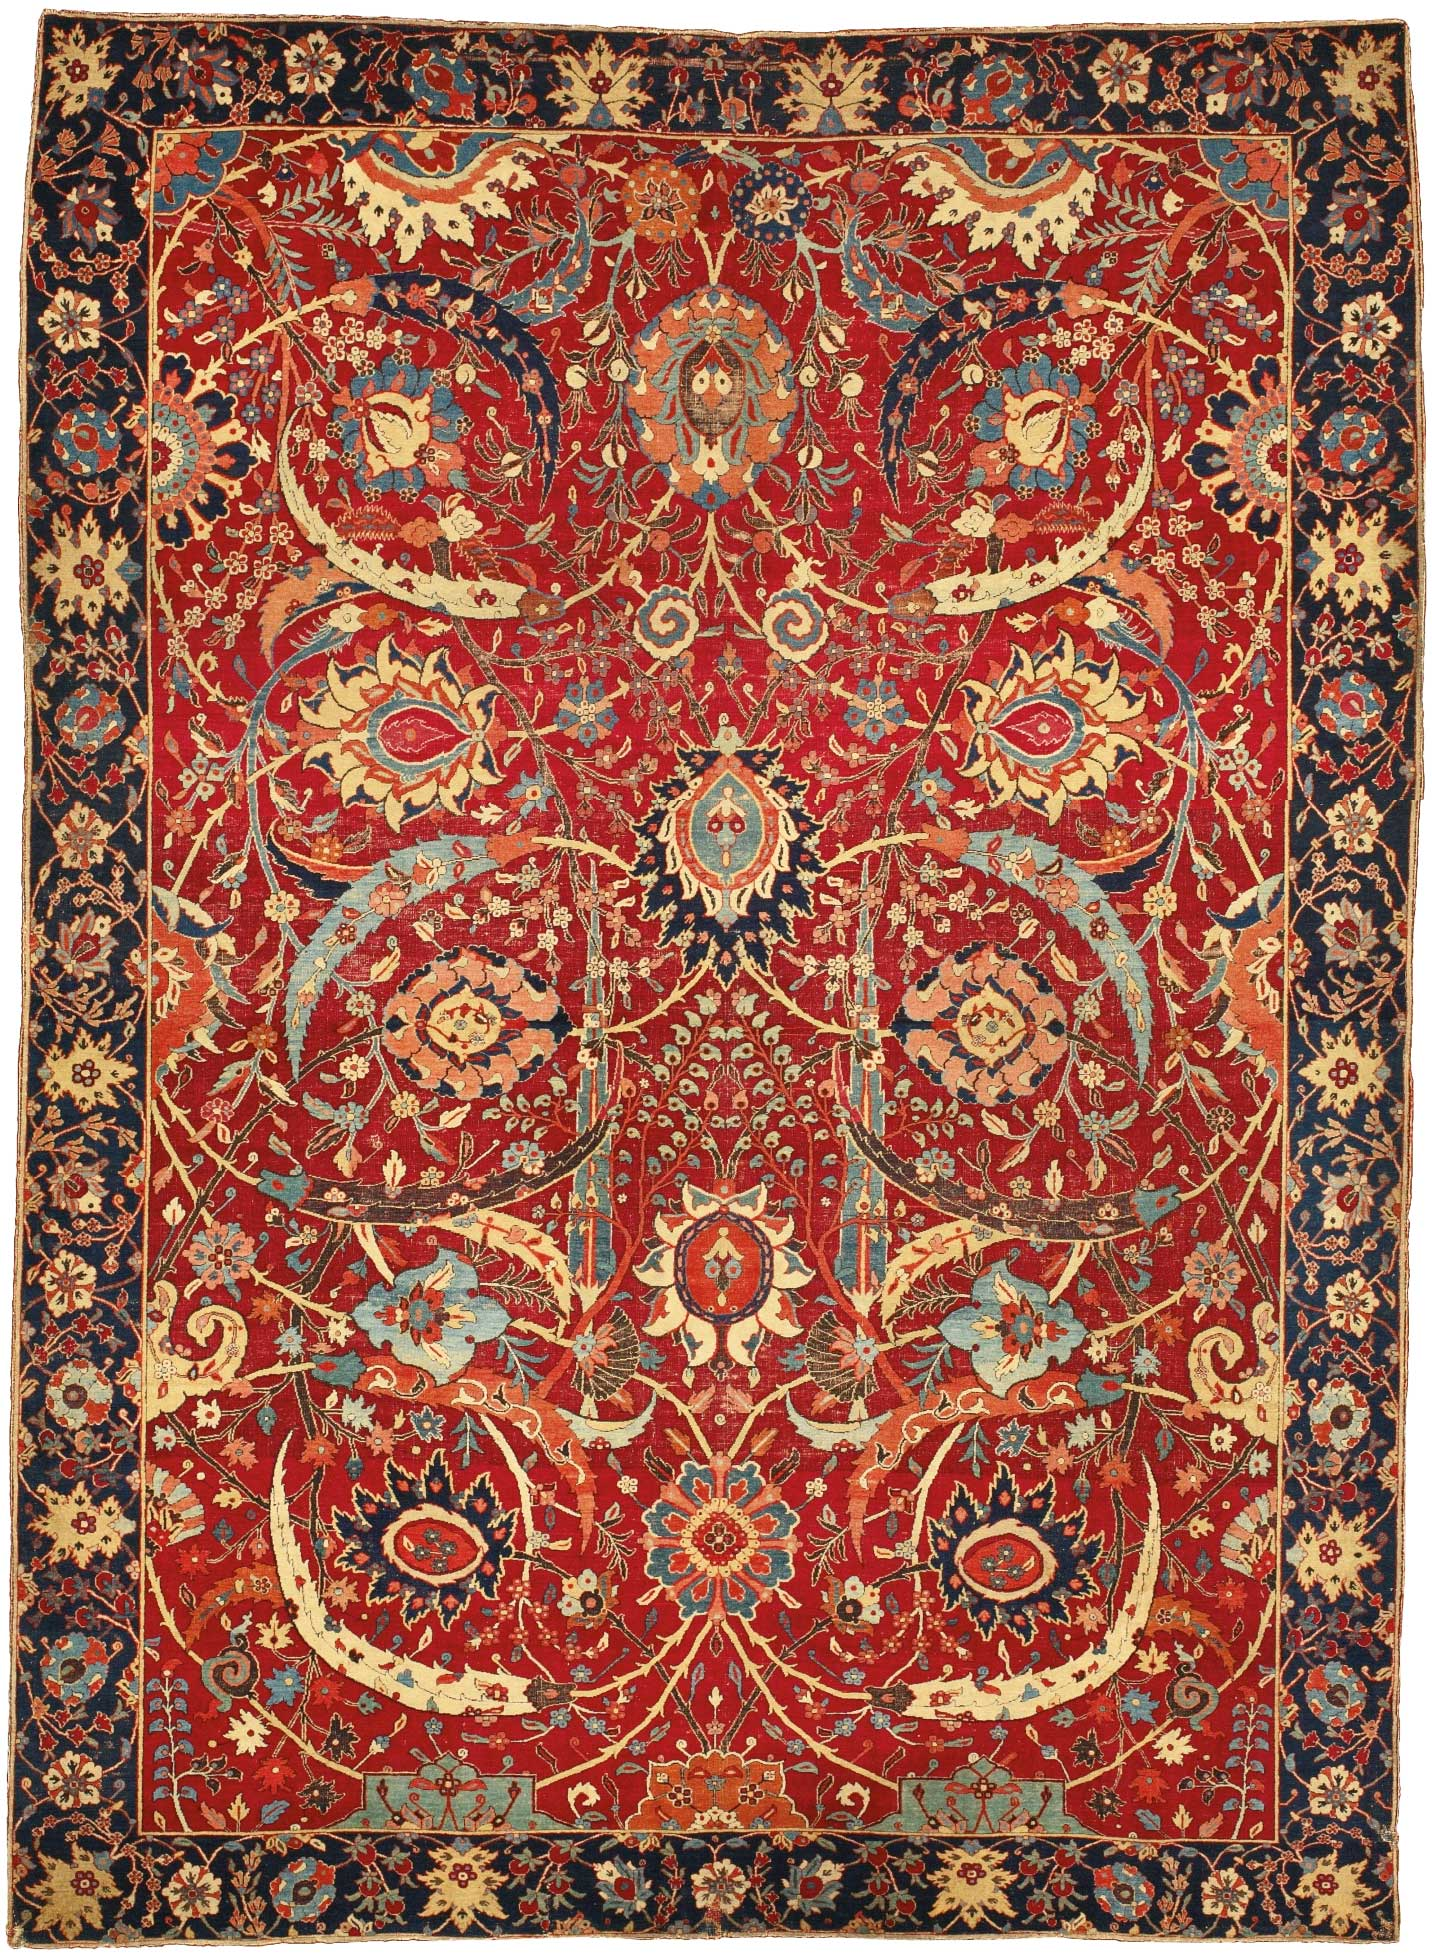 Most Expensive Antique Rug